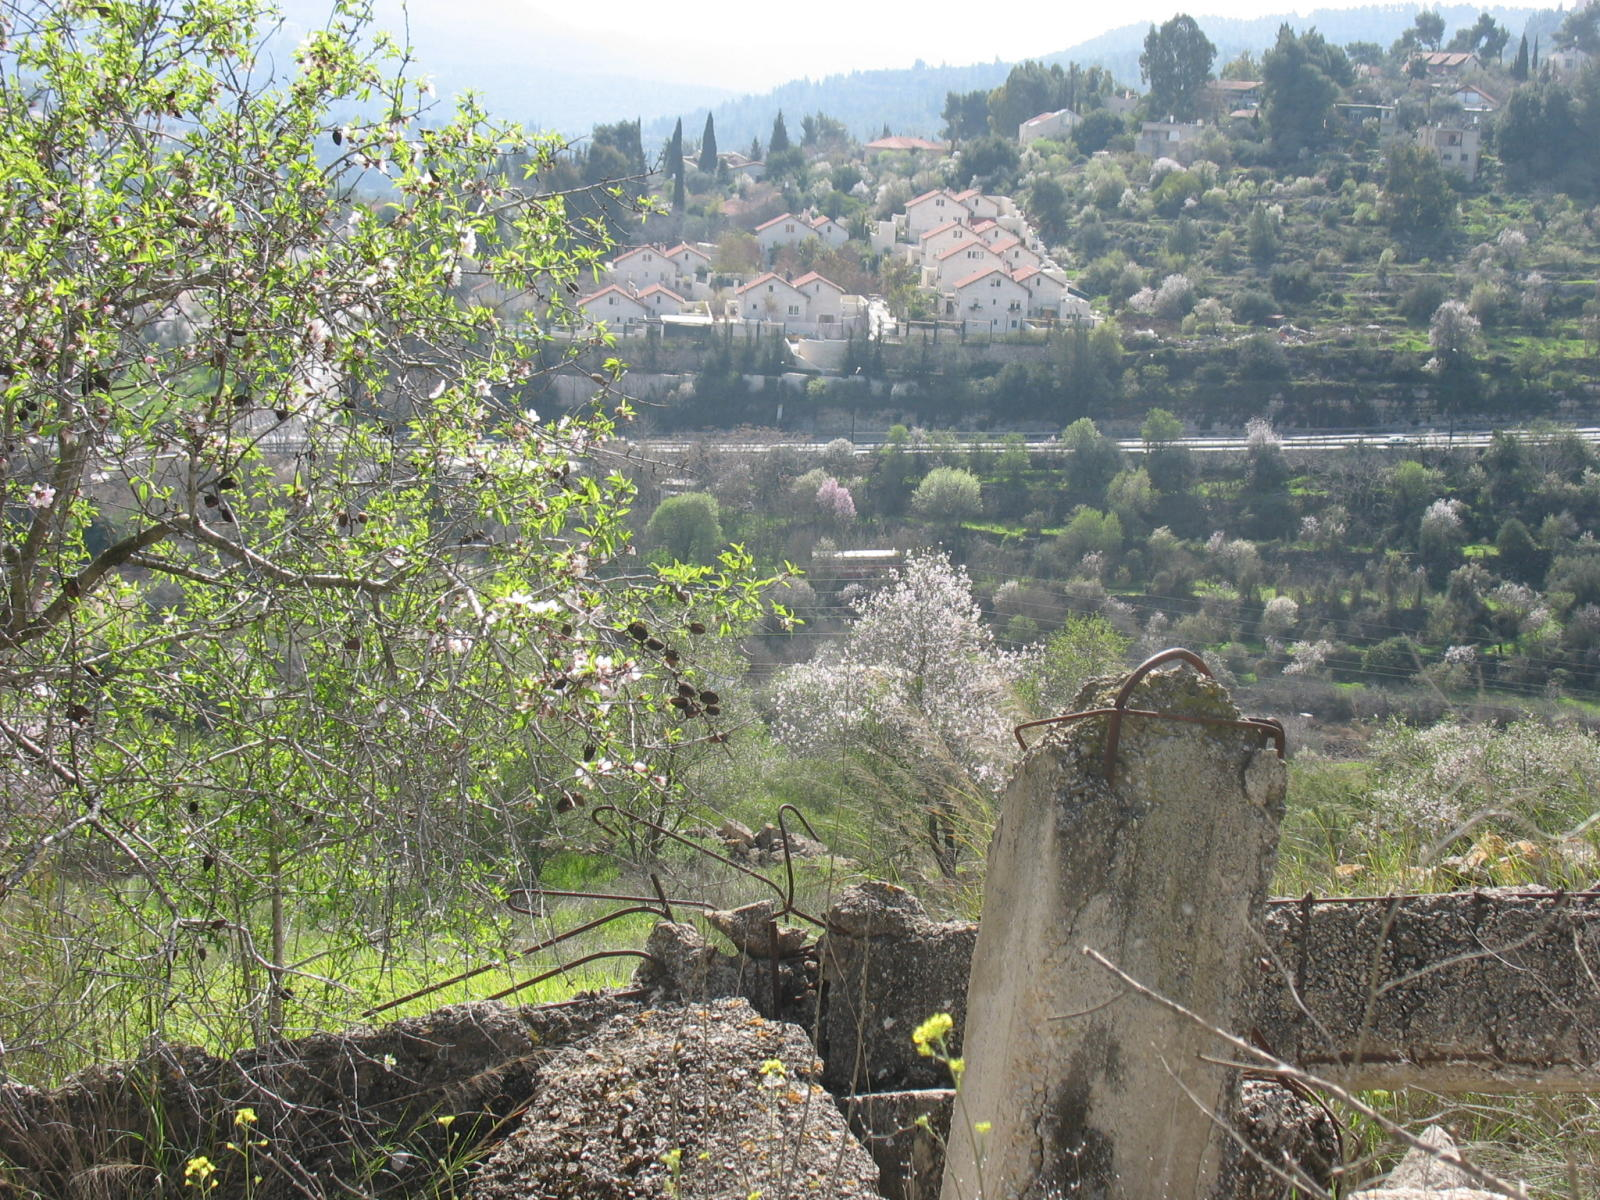 Qalunya - قالونيا : Ruins of the destroyed Palestinian village, and the exclusive Jewish colony appears in the background.